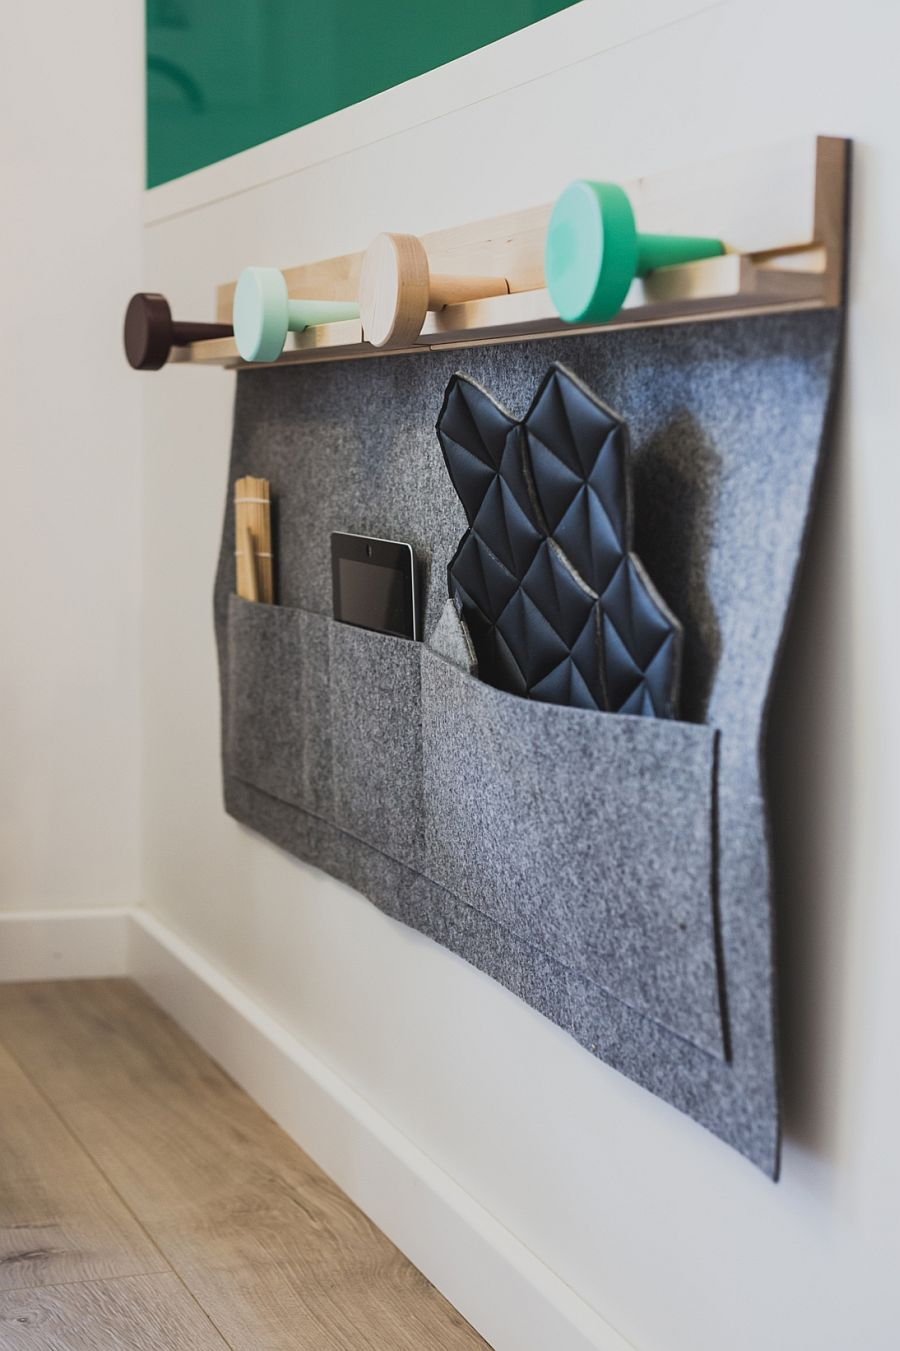 A simple way to hang your devices and accessories with Scandinavian simplicity